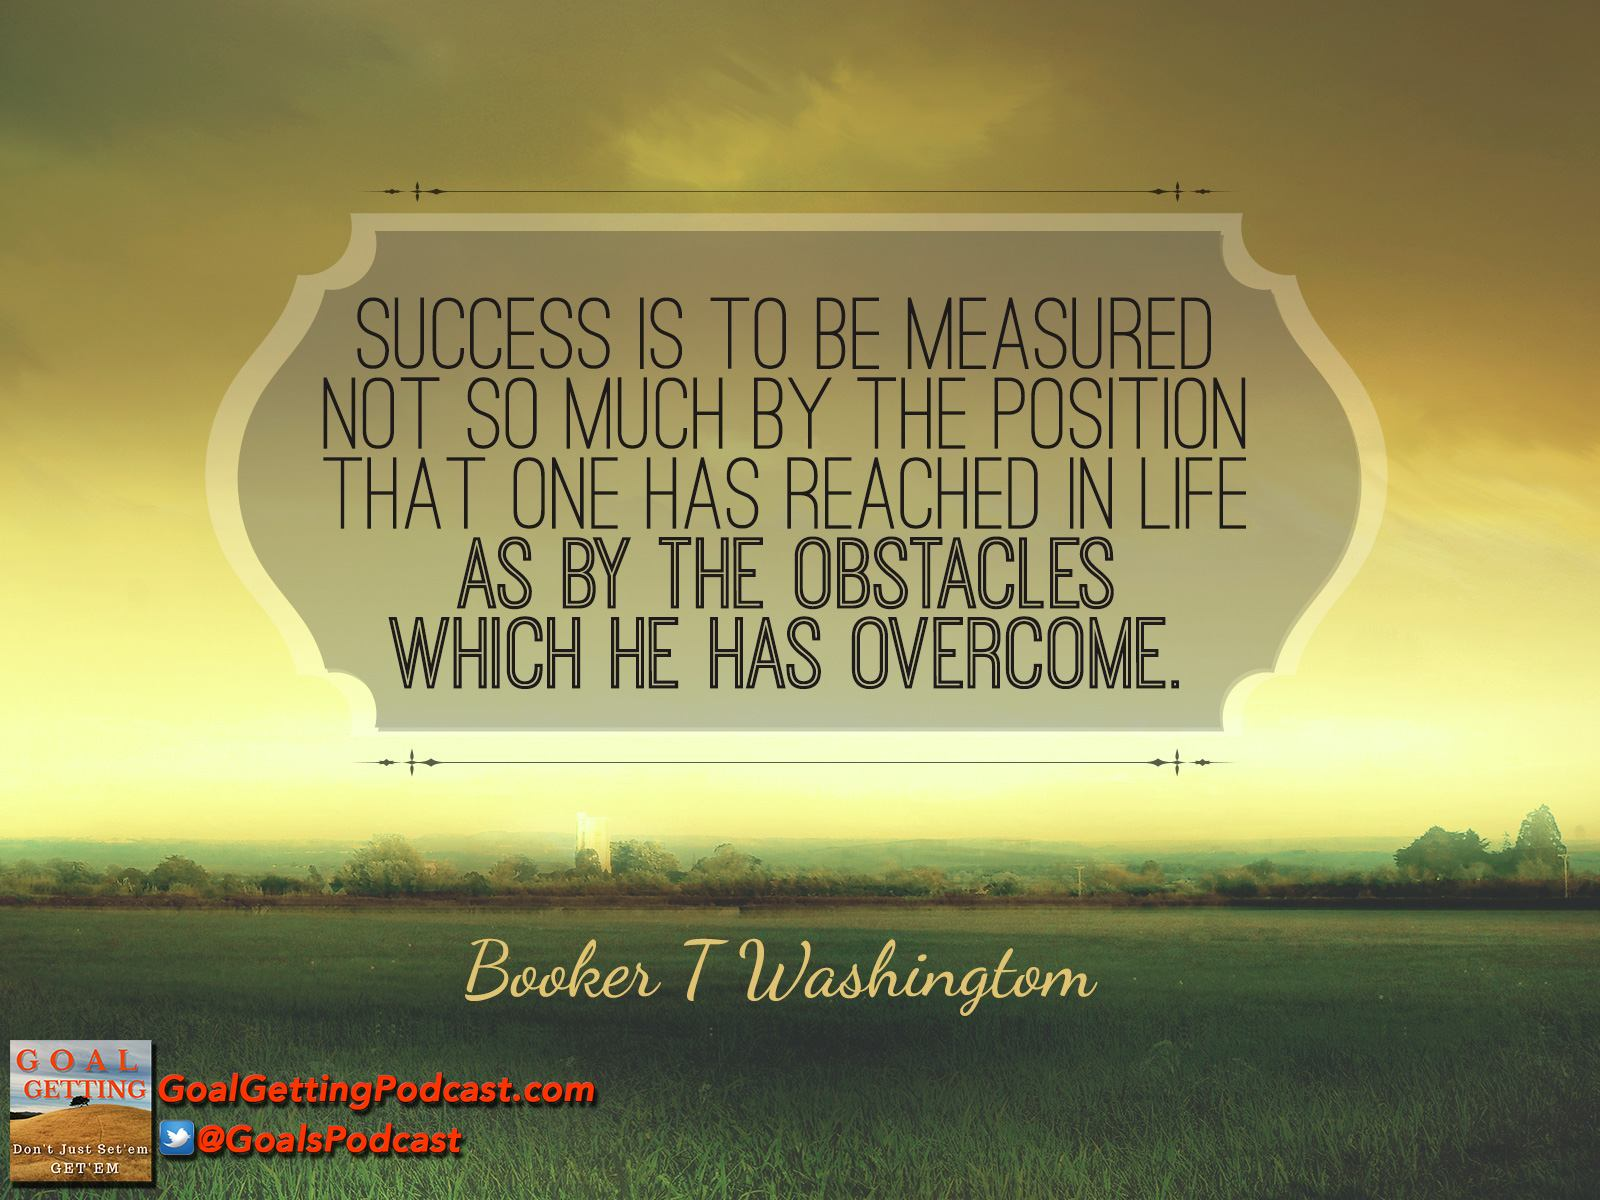 Booker T. Washington - Success is to be measured not so much by the position one has reached in life as by the obstacles one has overcome.